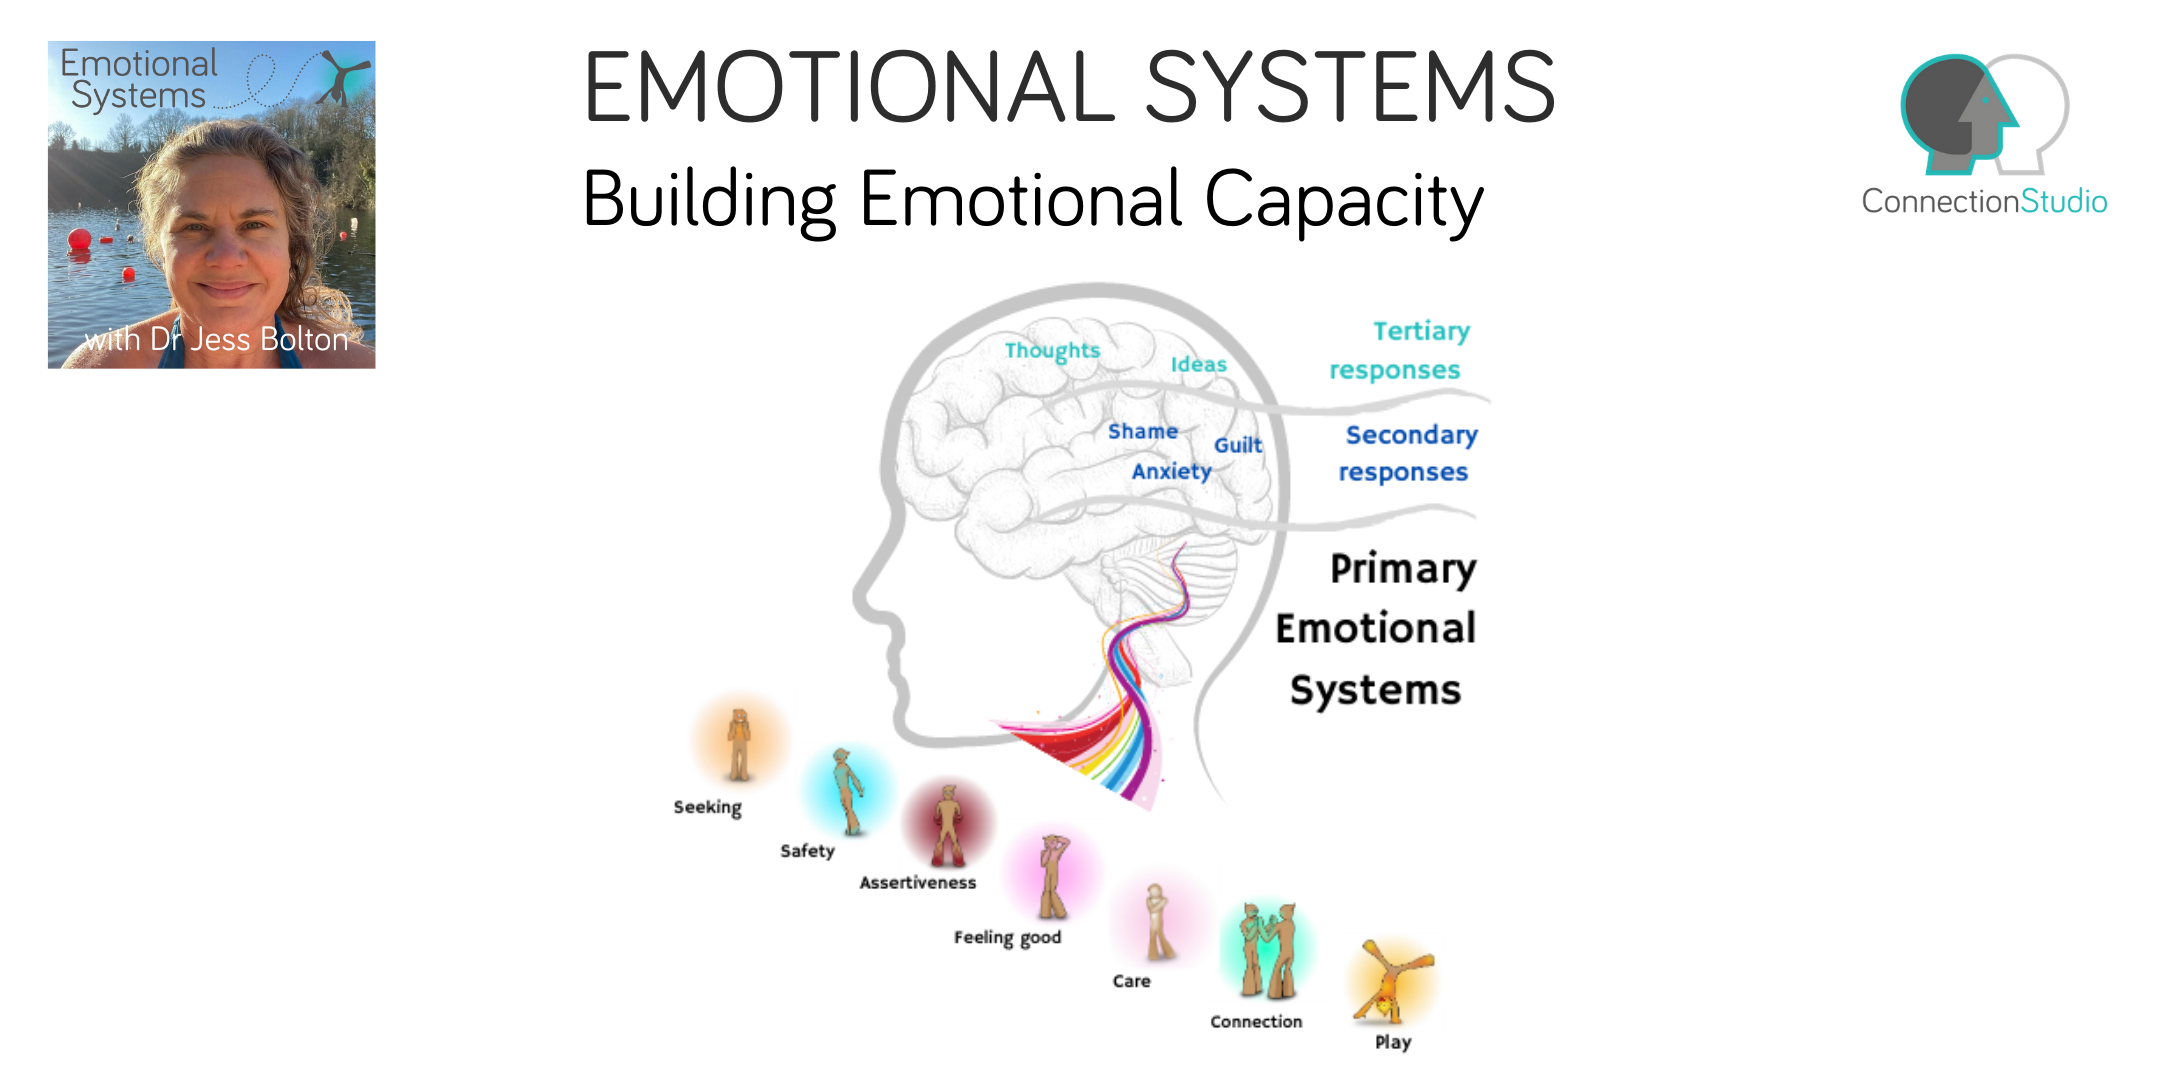 title - Emotional Systems: Building emotional capacity